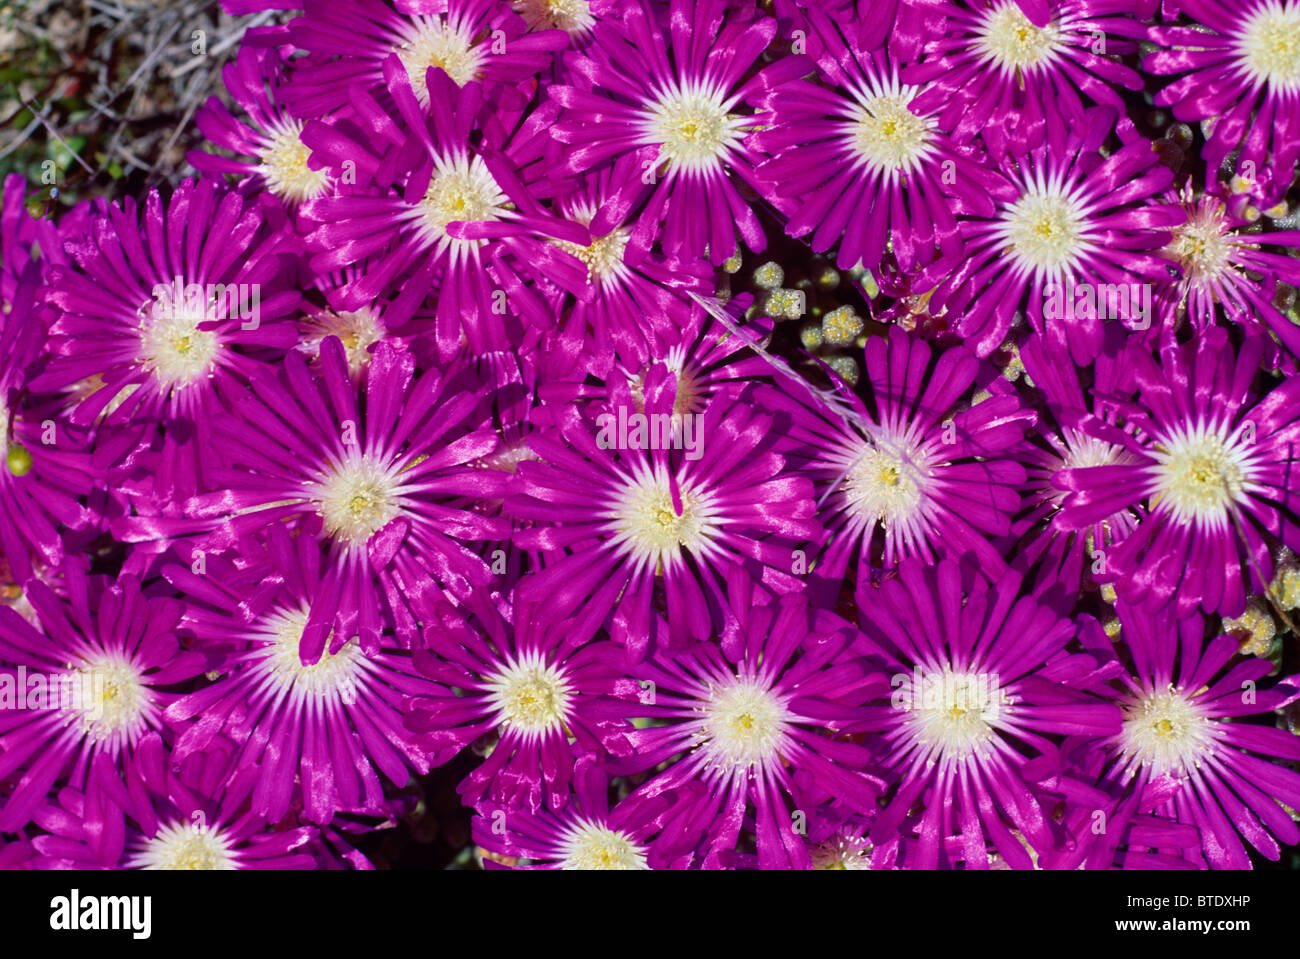 bright purple flowers called fyn t'nouroebos mesem stock photo, Beautiful flower